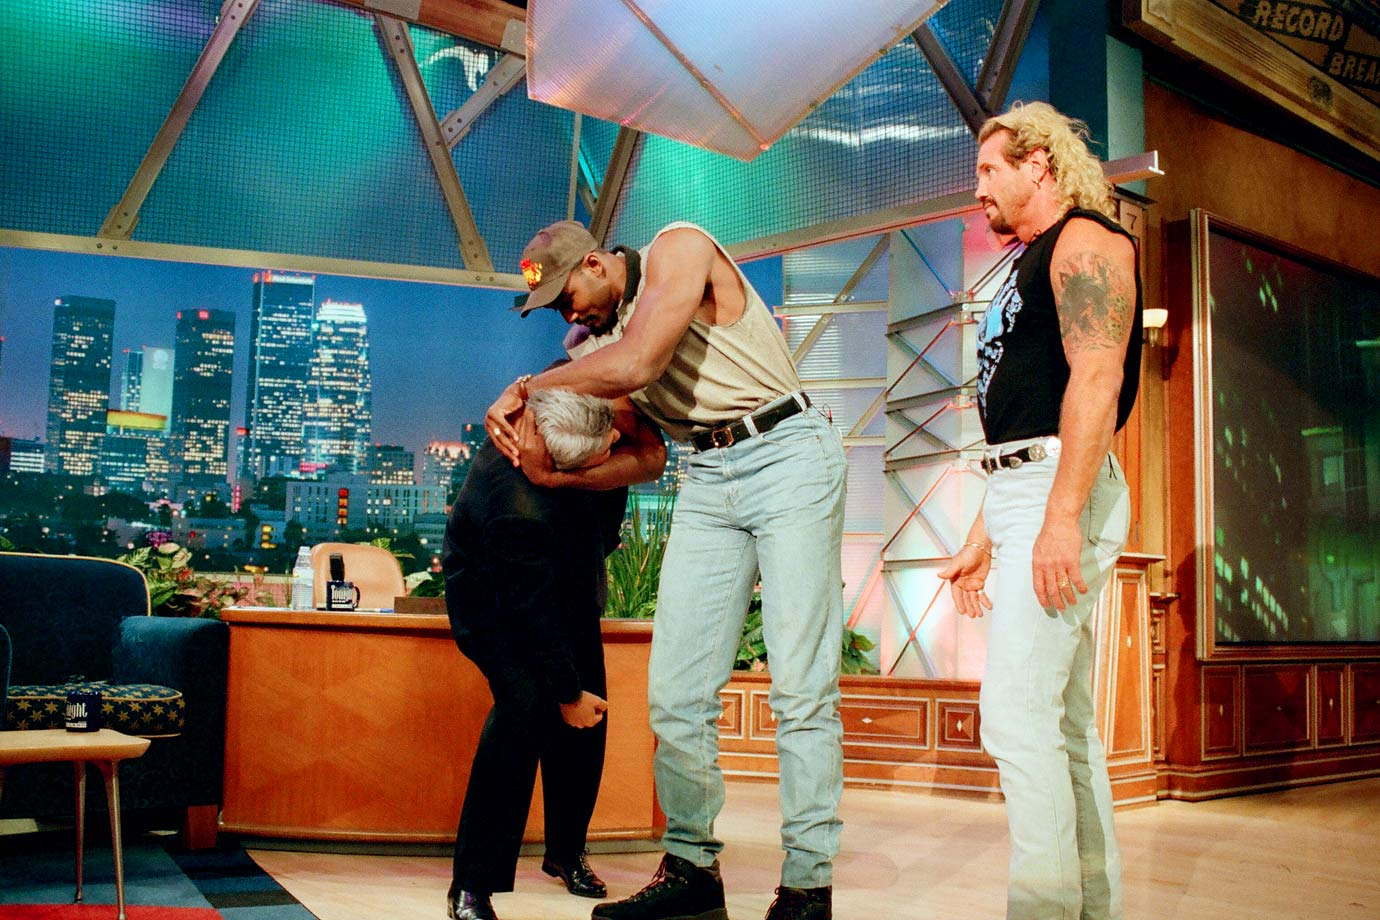 Karl Malone shows Jay Leno a wrestling move as his tag team partner Diamond Dallas Page looks on.